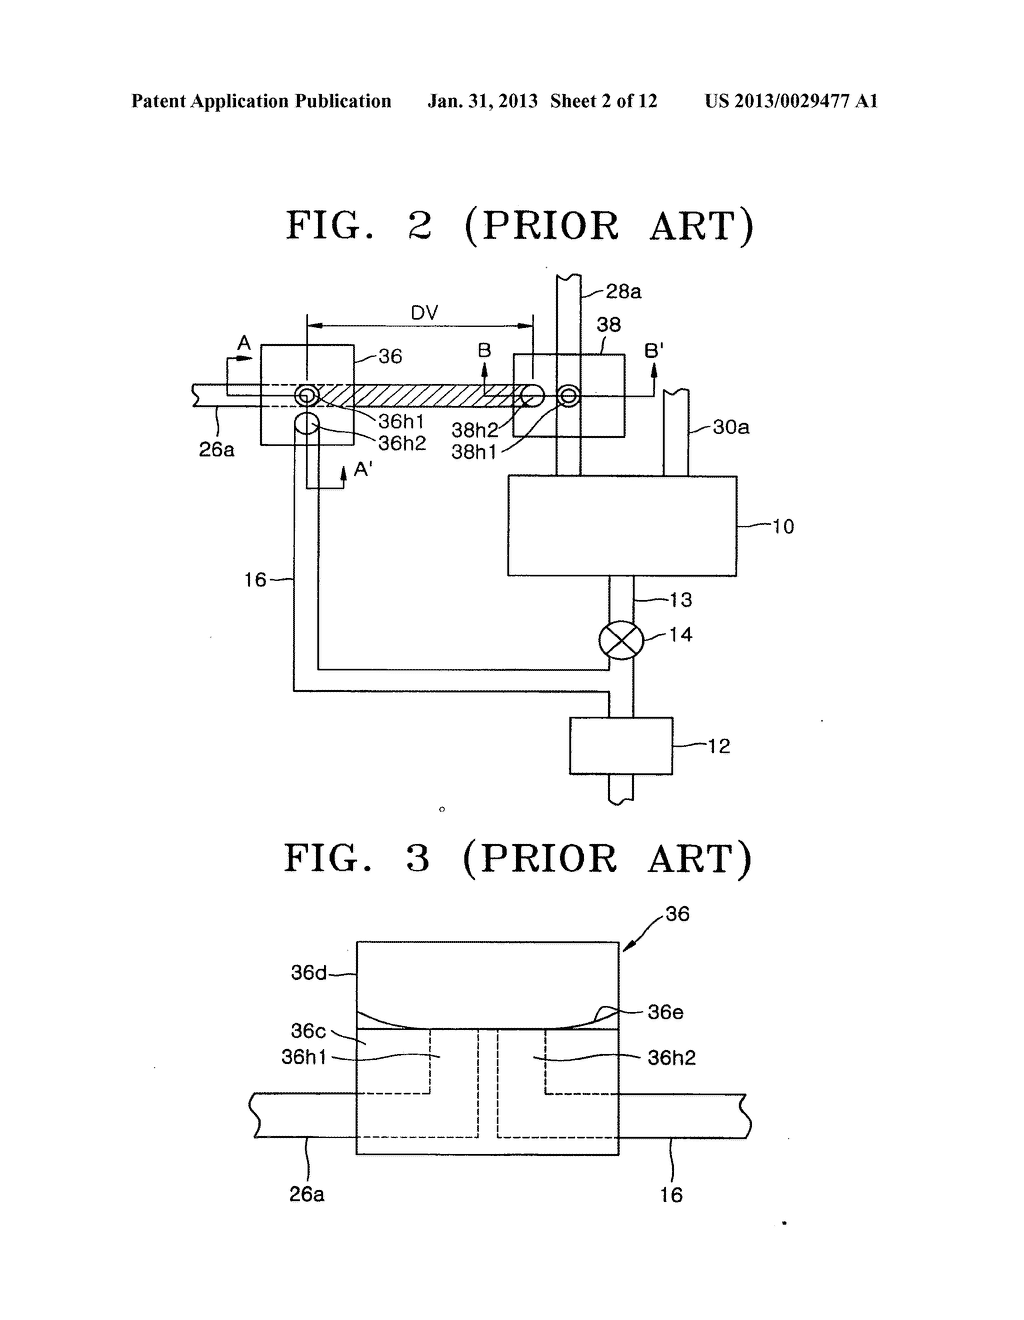 APPARATUS INCLUDING 4-WAY VALVE FOR FABRICATING SEMICONDUCTOR DEVICE,     METHOD OF CONTROLLING VALVE, AND METHOD OF FABRICATING SEMICONDUCTOR     DEVICE USING THE APPARATUS - diagram, schematic, and image 03